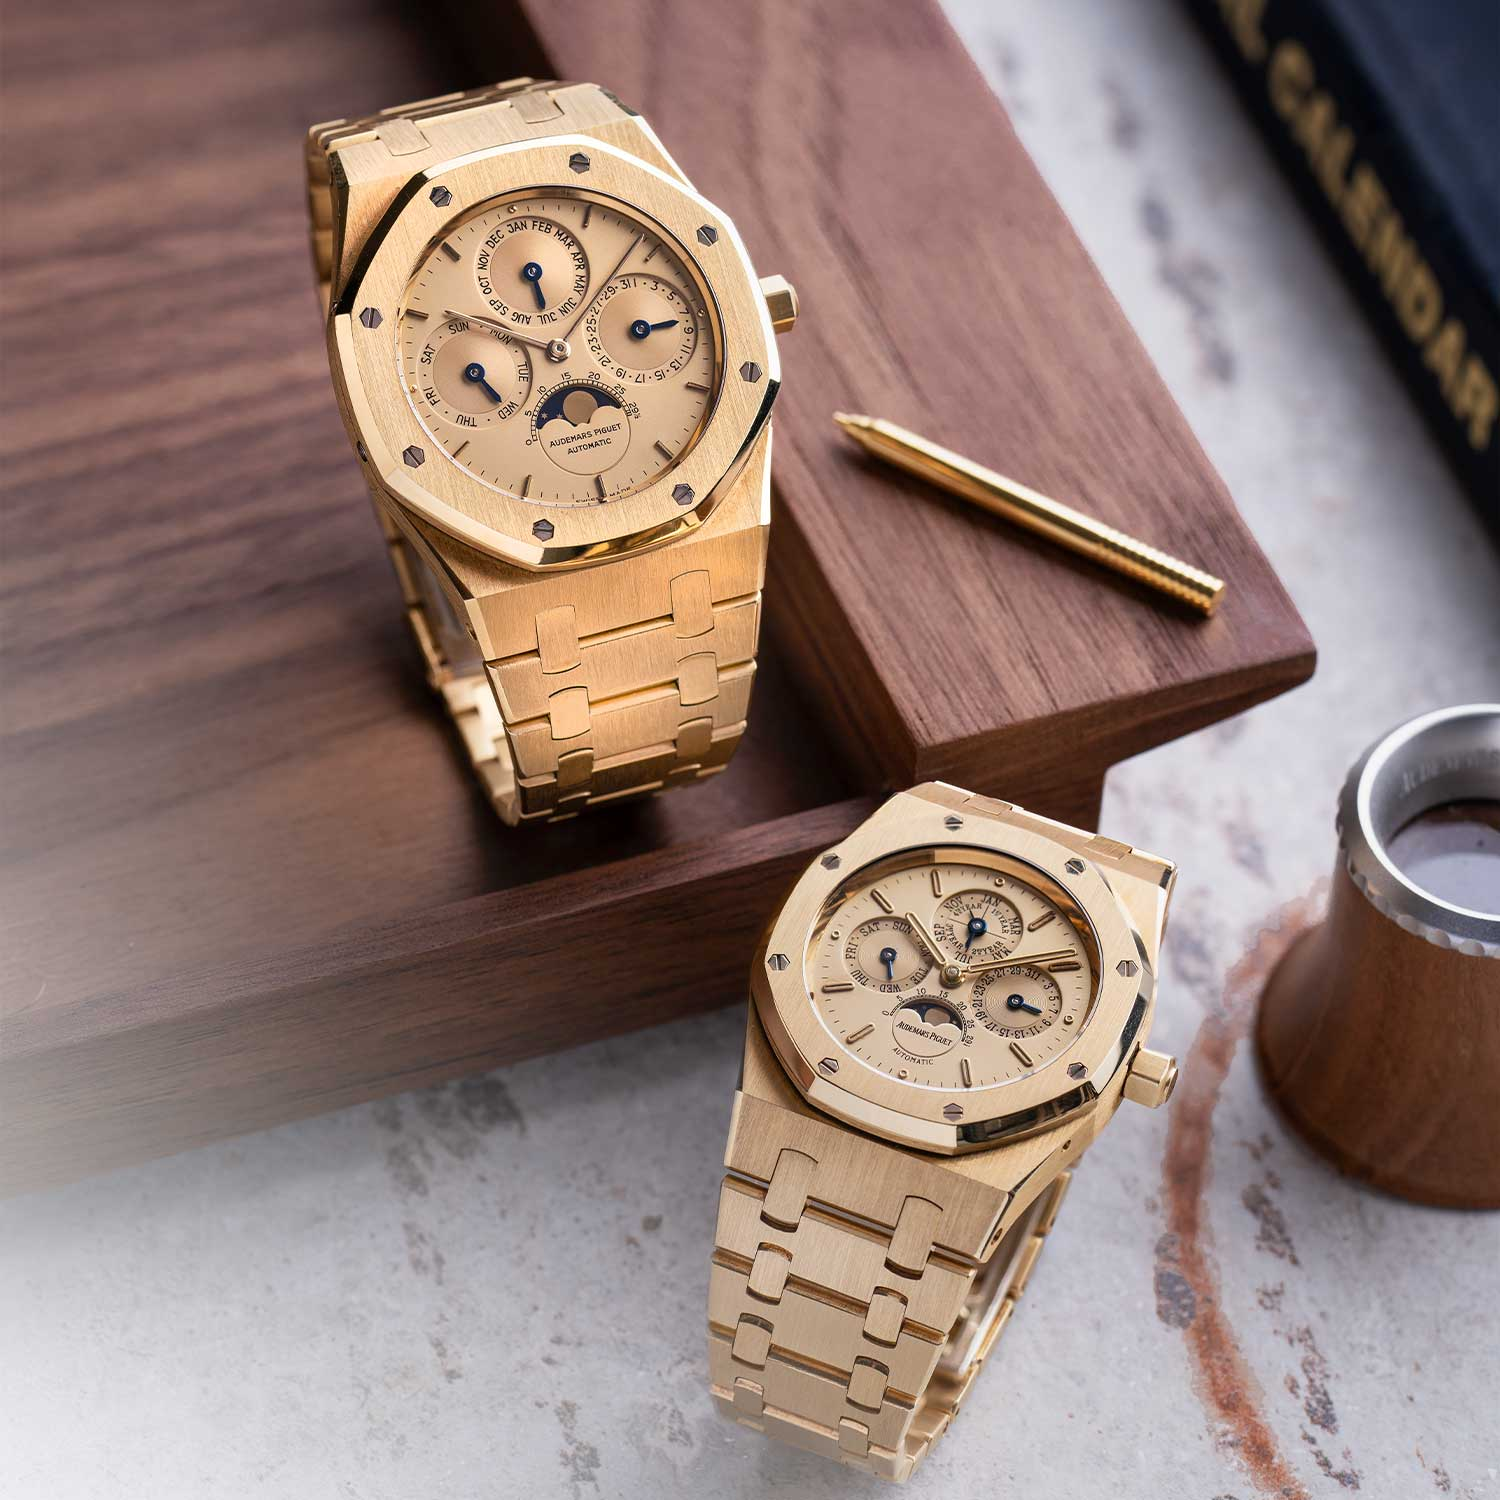 The Royal Oak Perpetual Calendars ref. 25686BA in all yellow gold on the left and the 33mm ref. 25800BA, also in all yellow gold on the right; the watches seen here are presently part of the Pygmalion Gallery's private collection (Image: Photo and watches, property of Pygmalion Gallery)